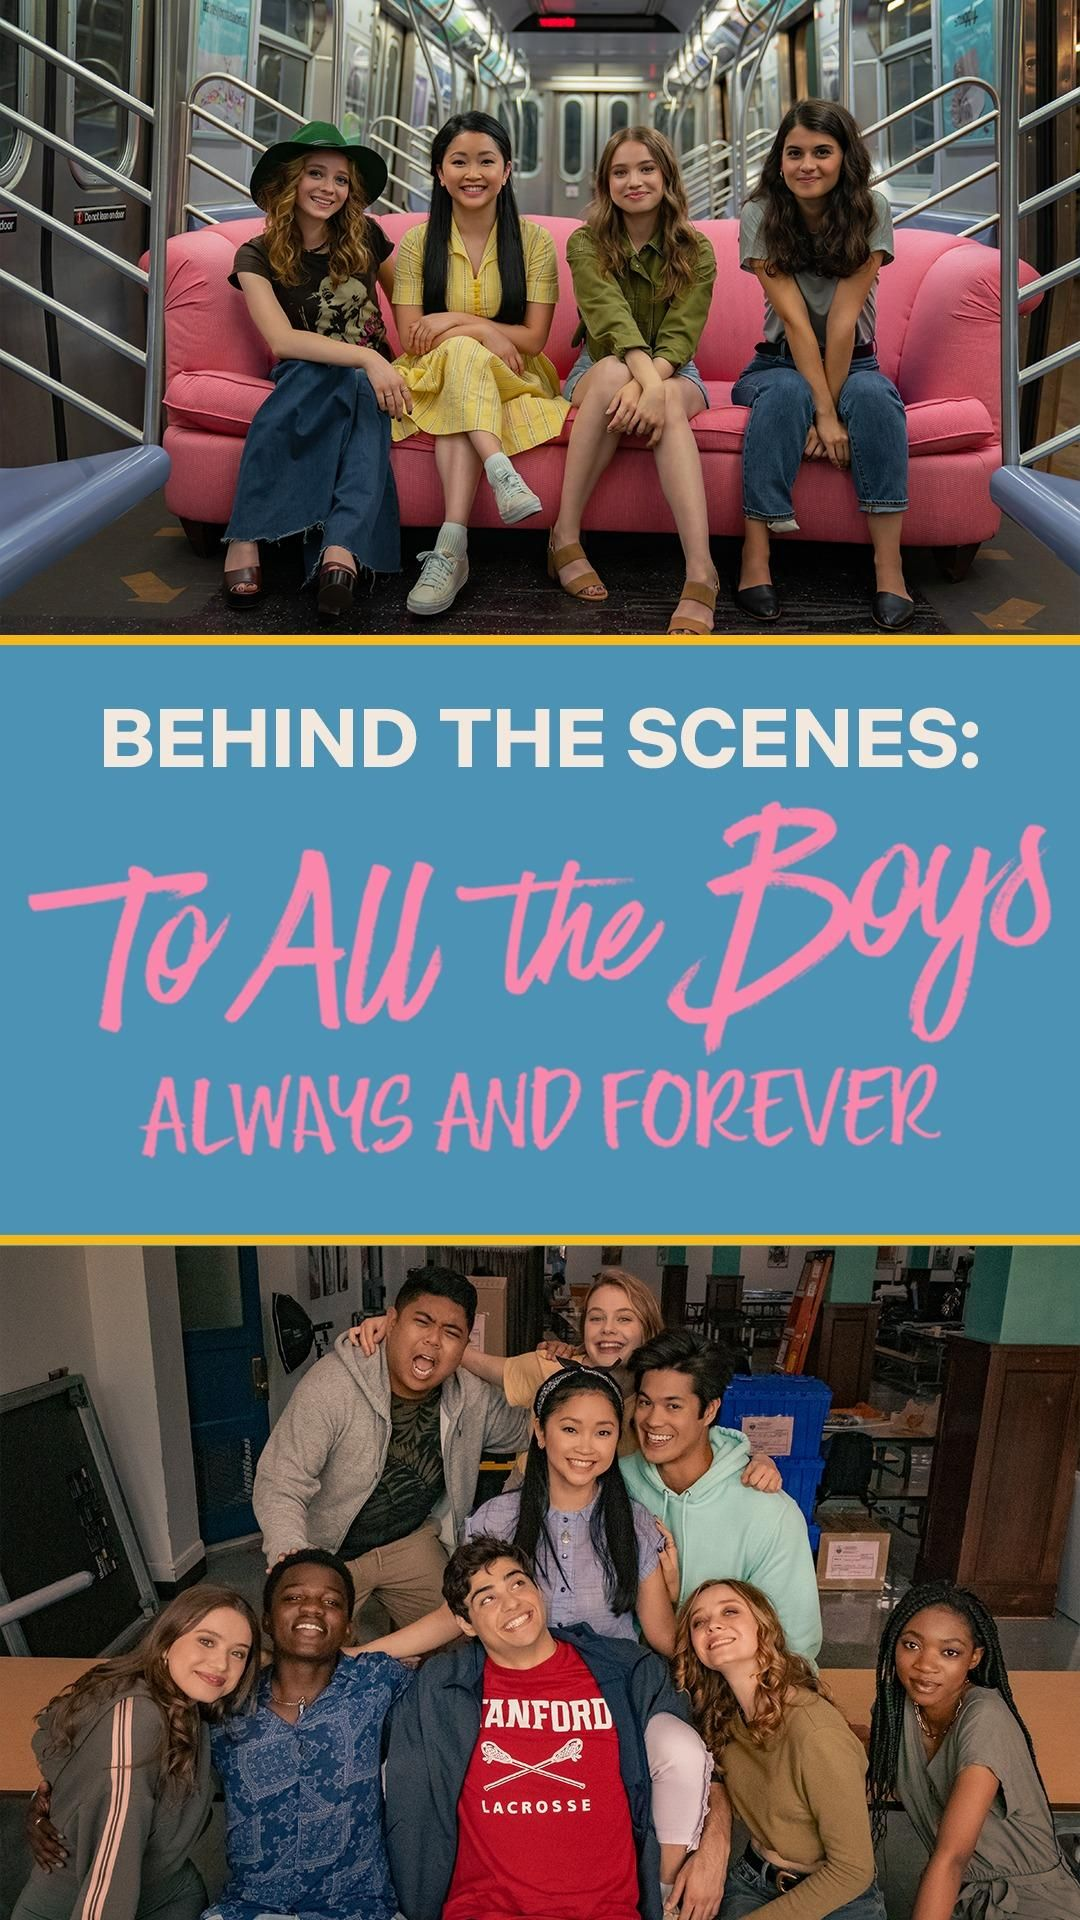 Behind the Scenes: To All the Boys: Always and Forever